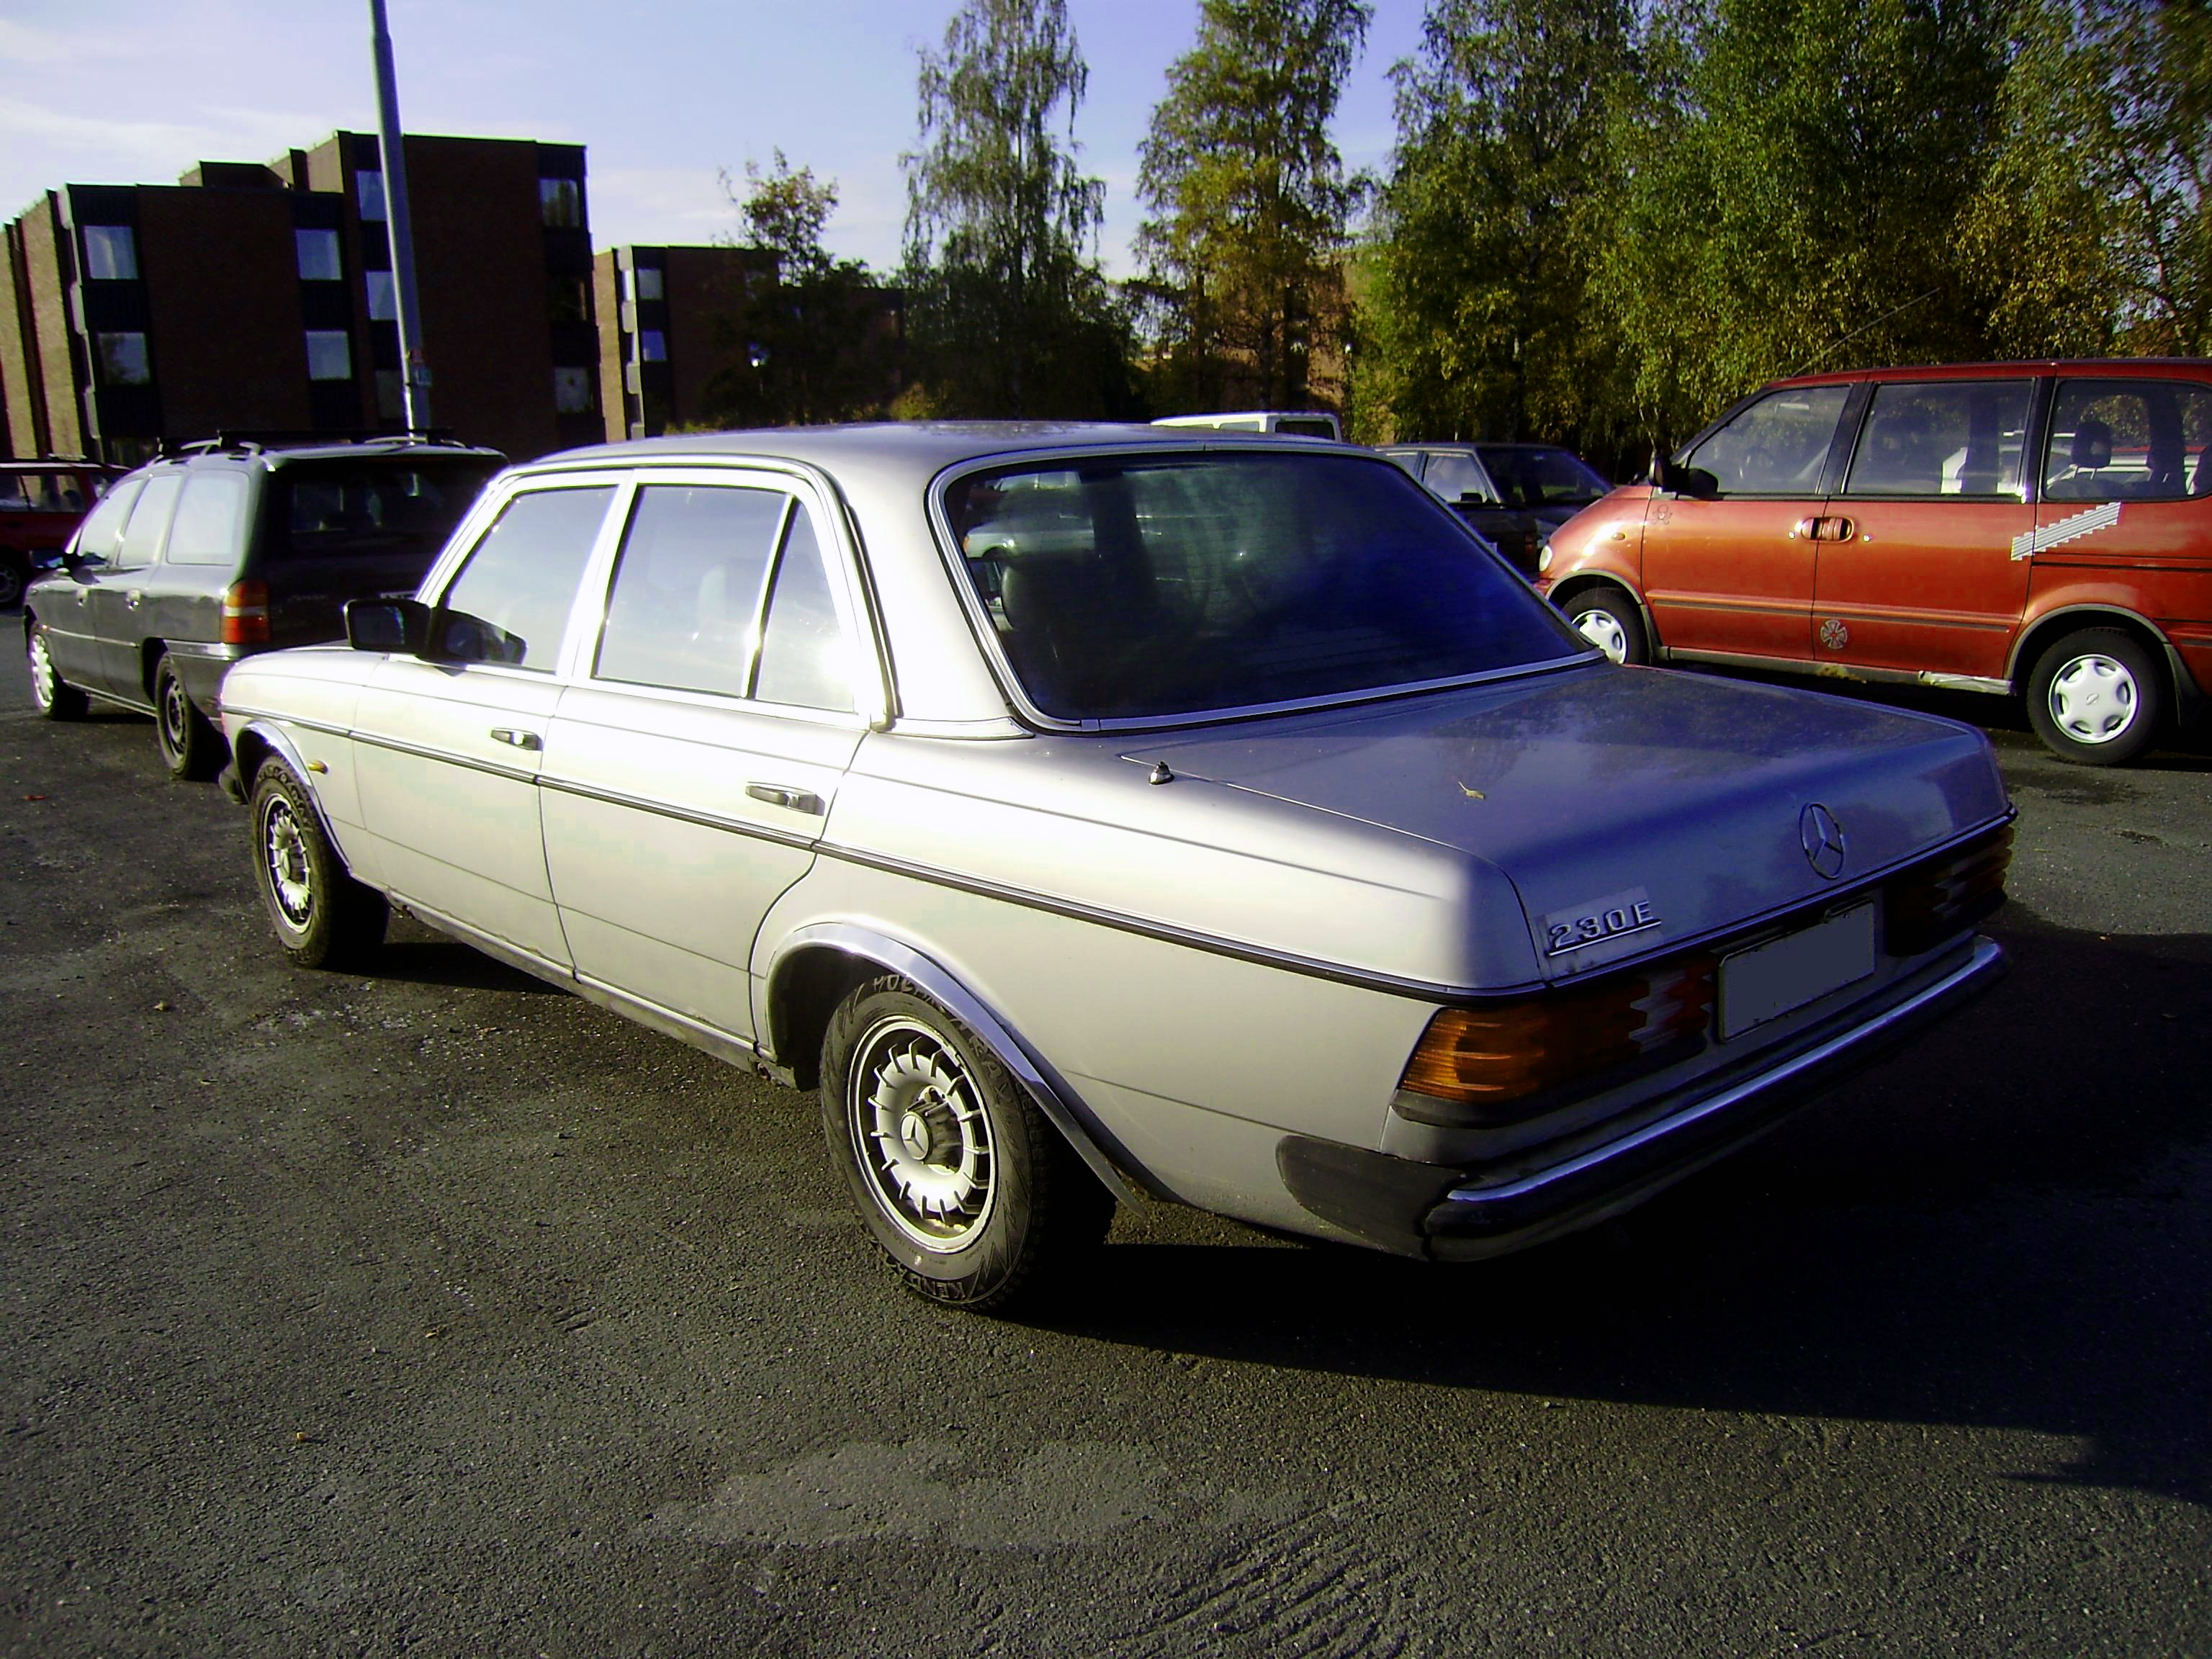 Mercedes benz w123 230e the solobugas experience for Mercedes benz w123